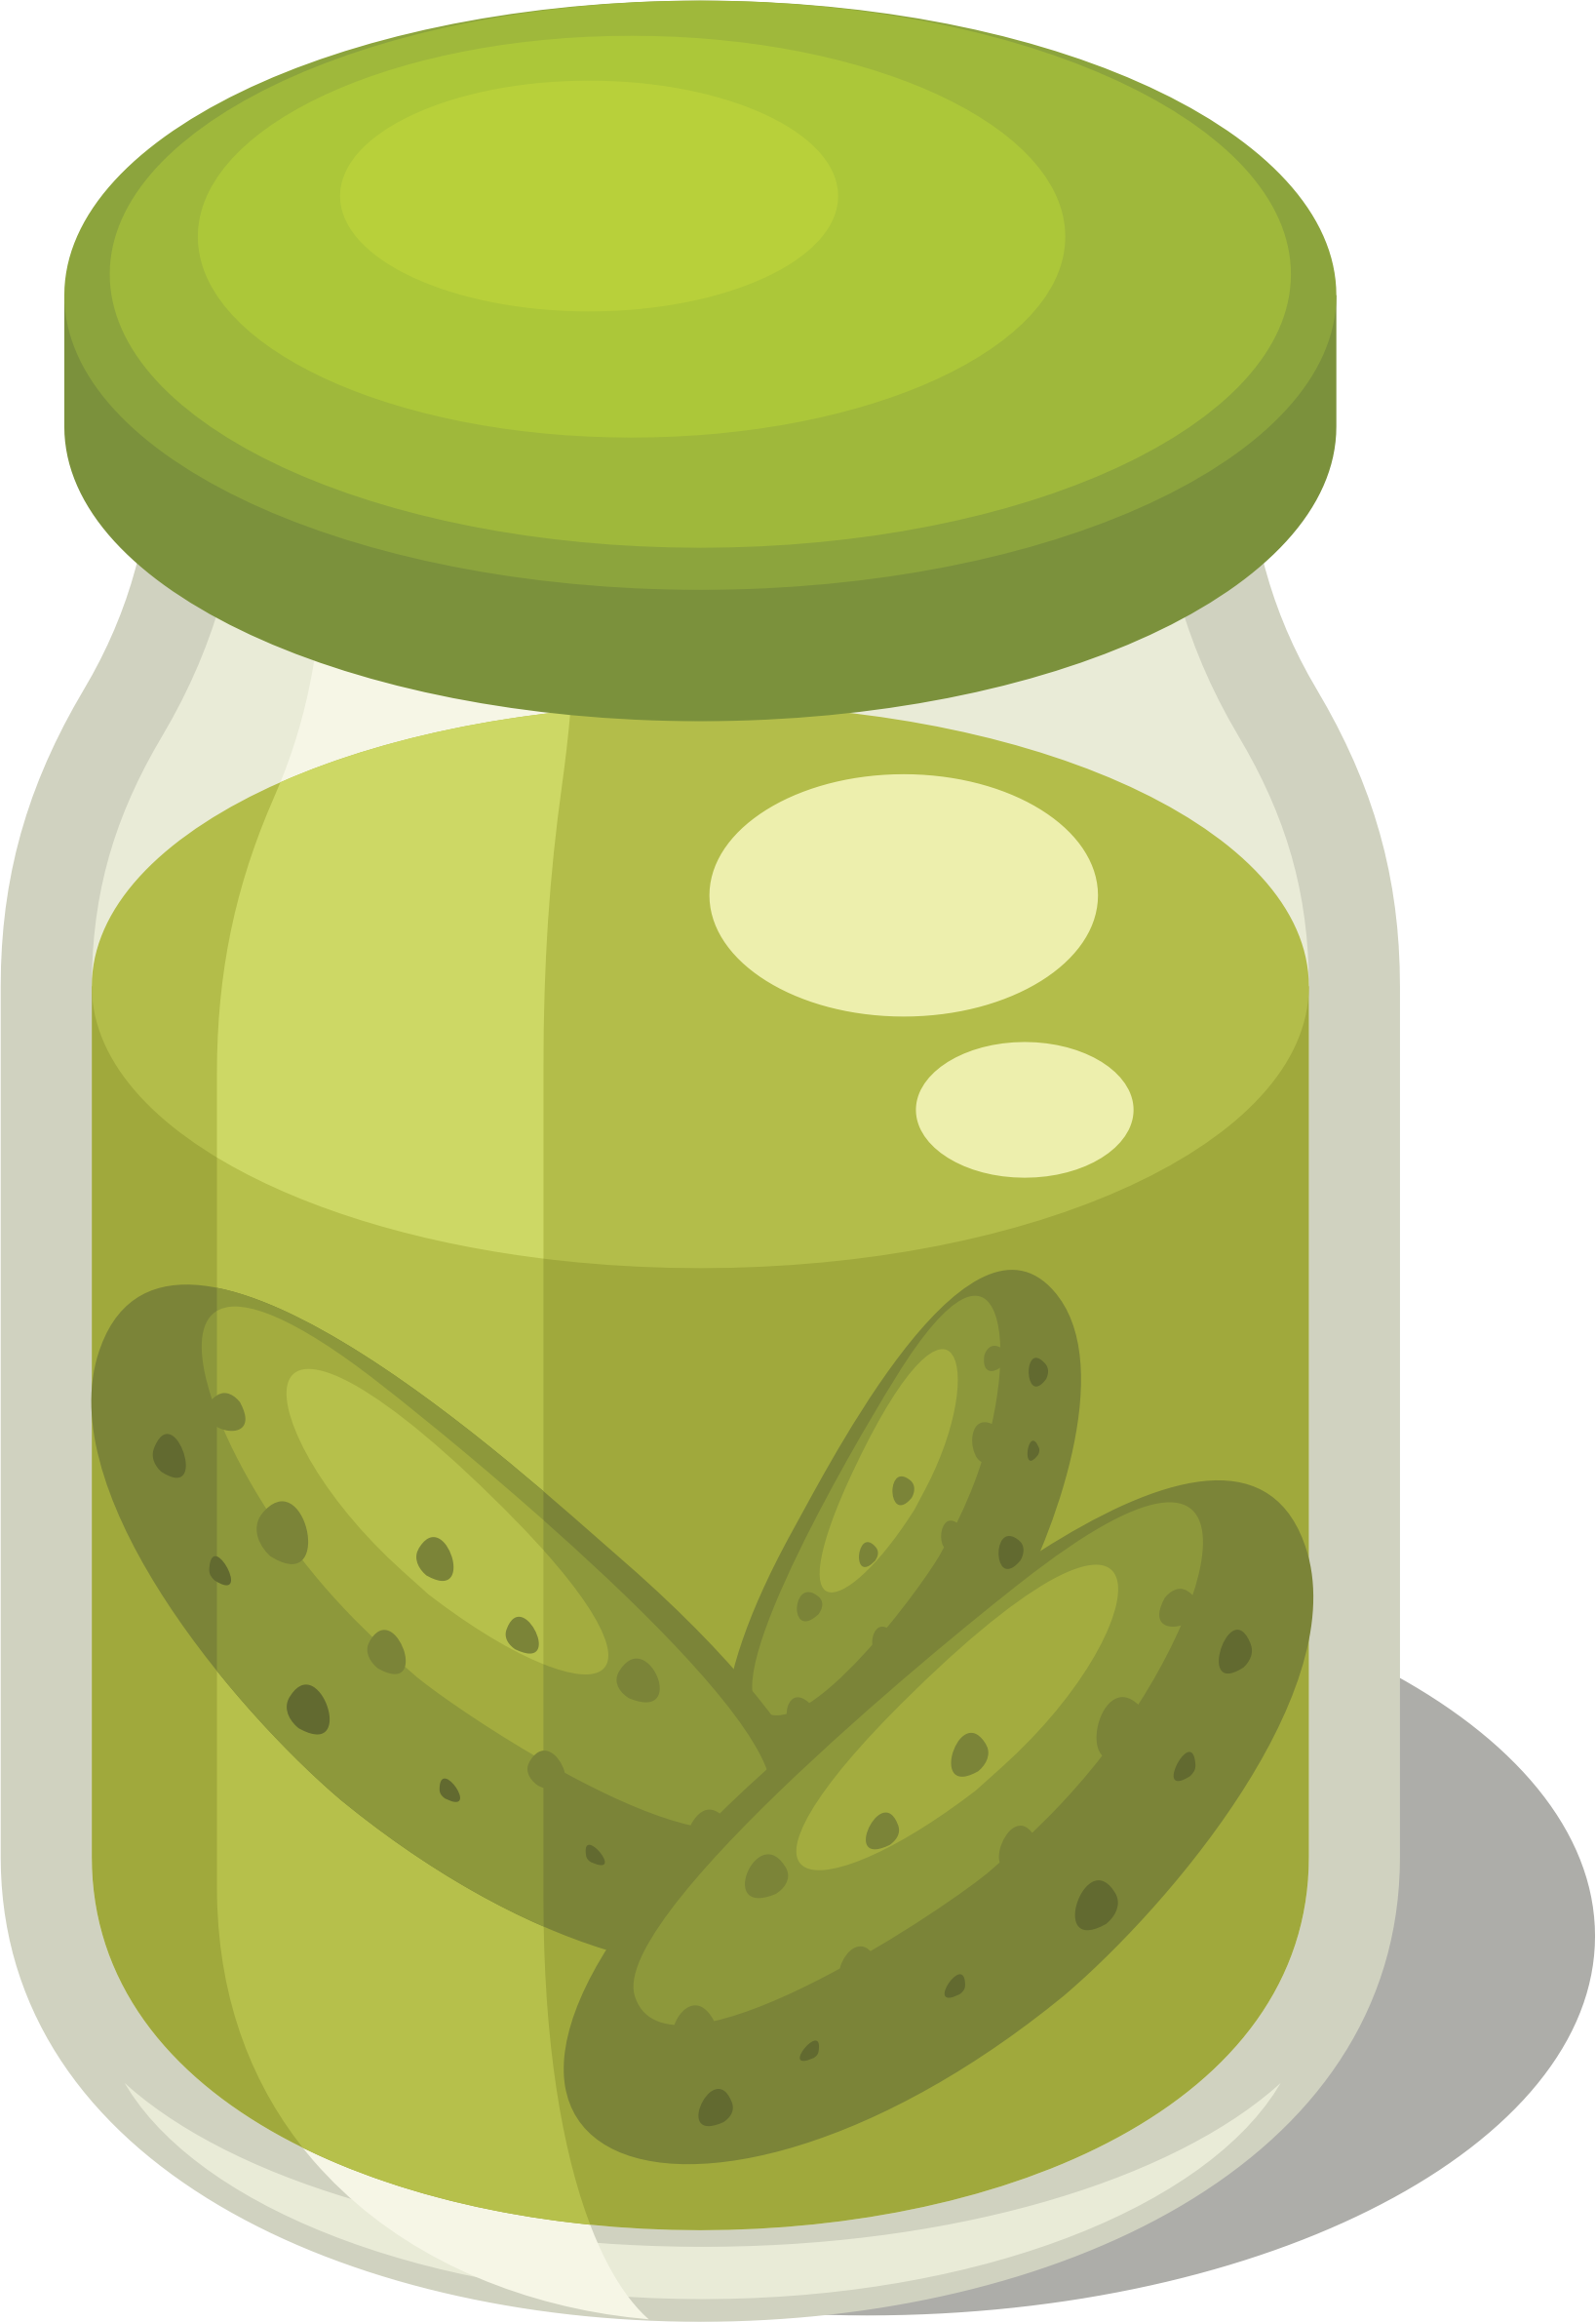 jpg free library Hd a public domain. Pickles clipart.